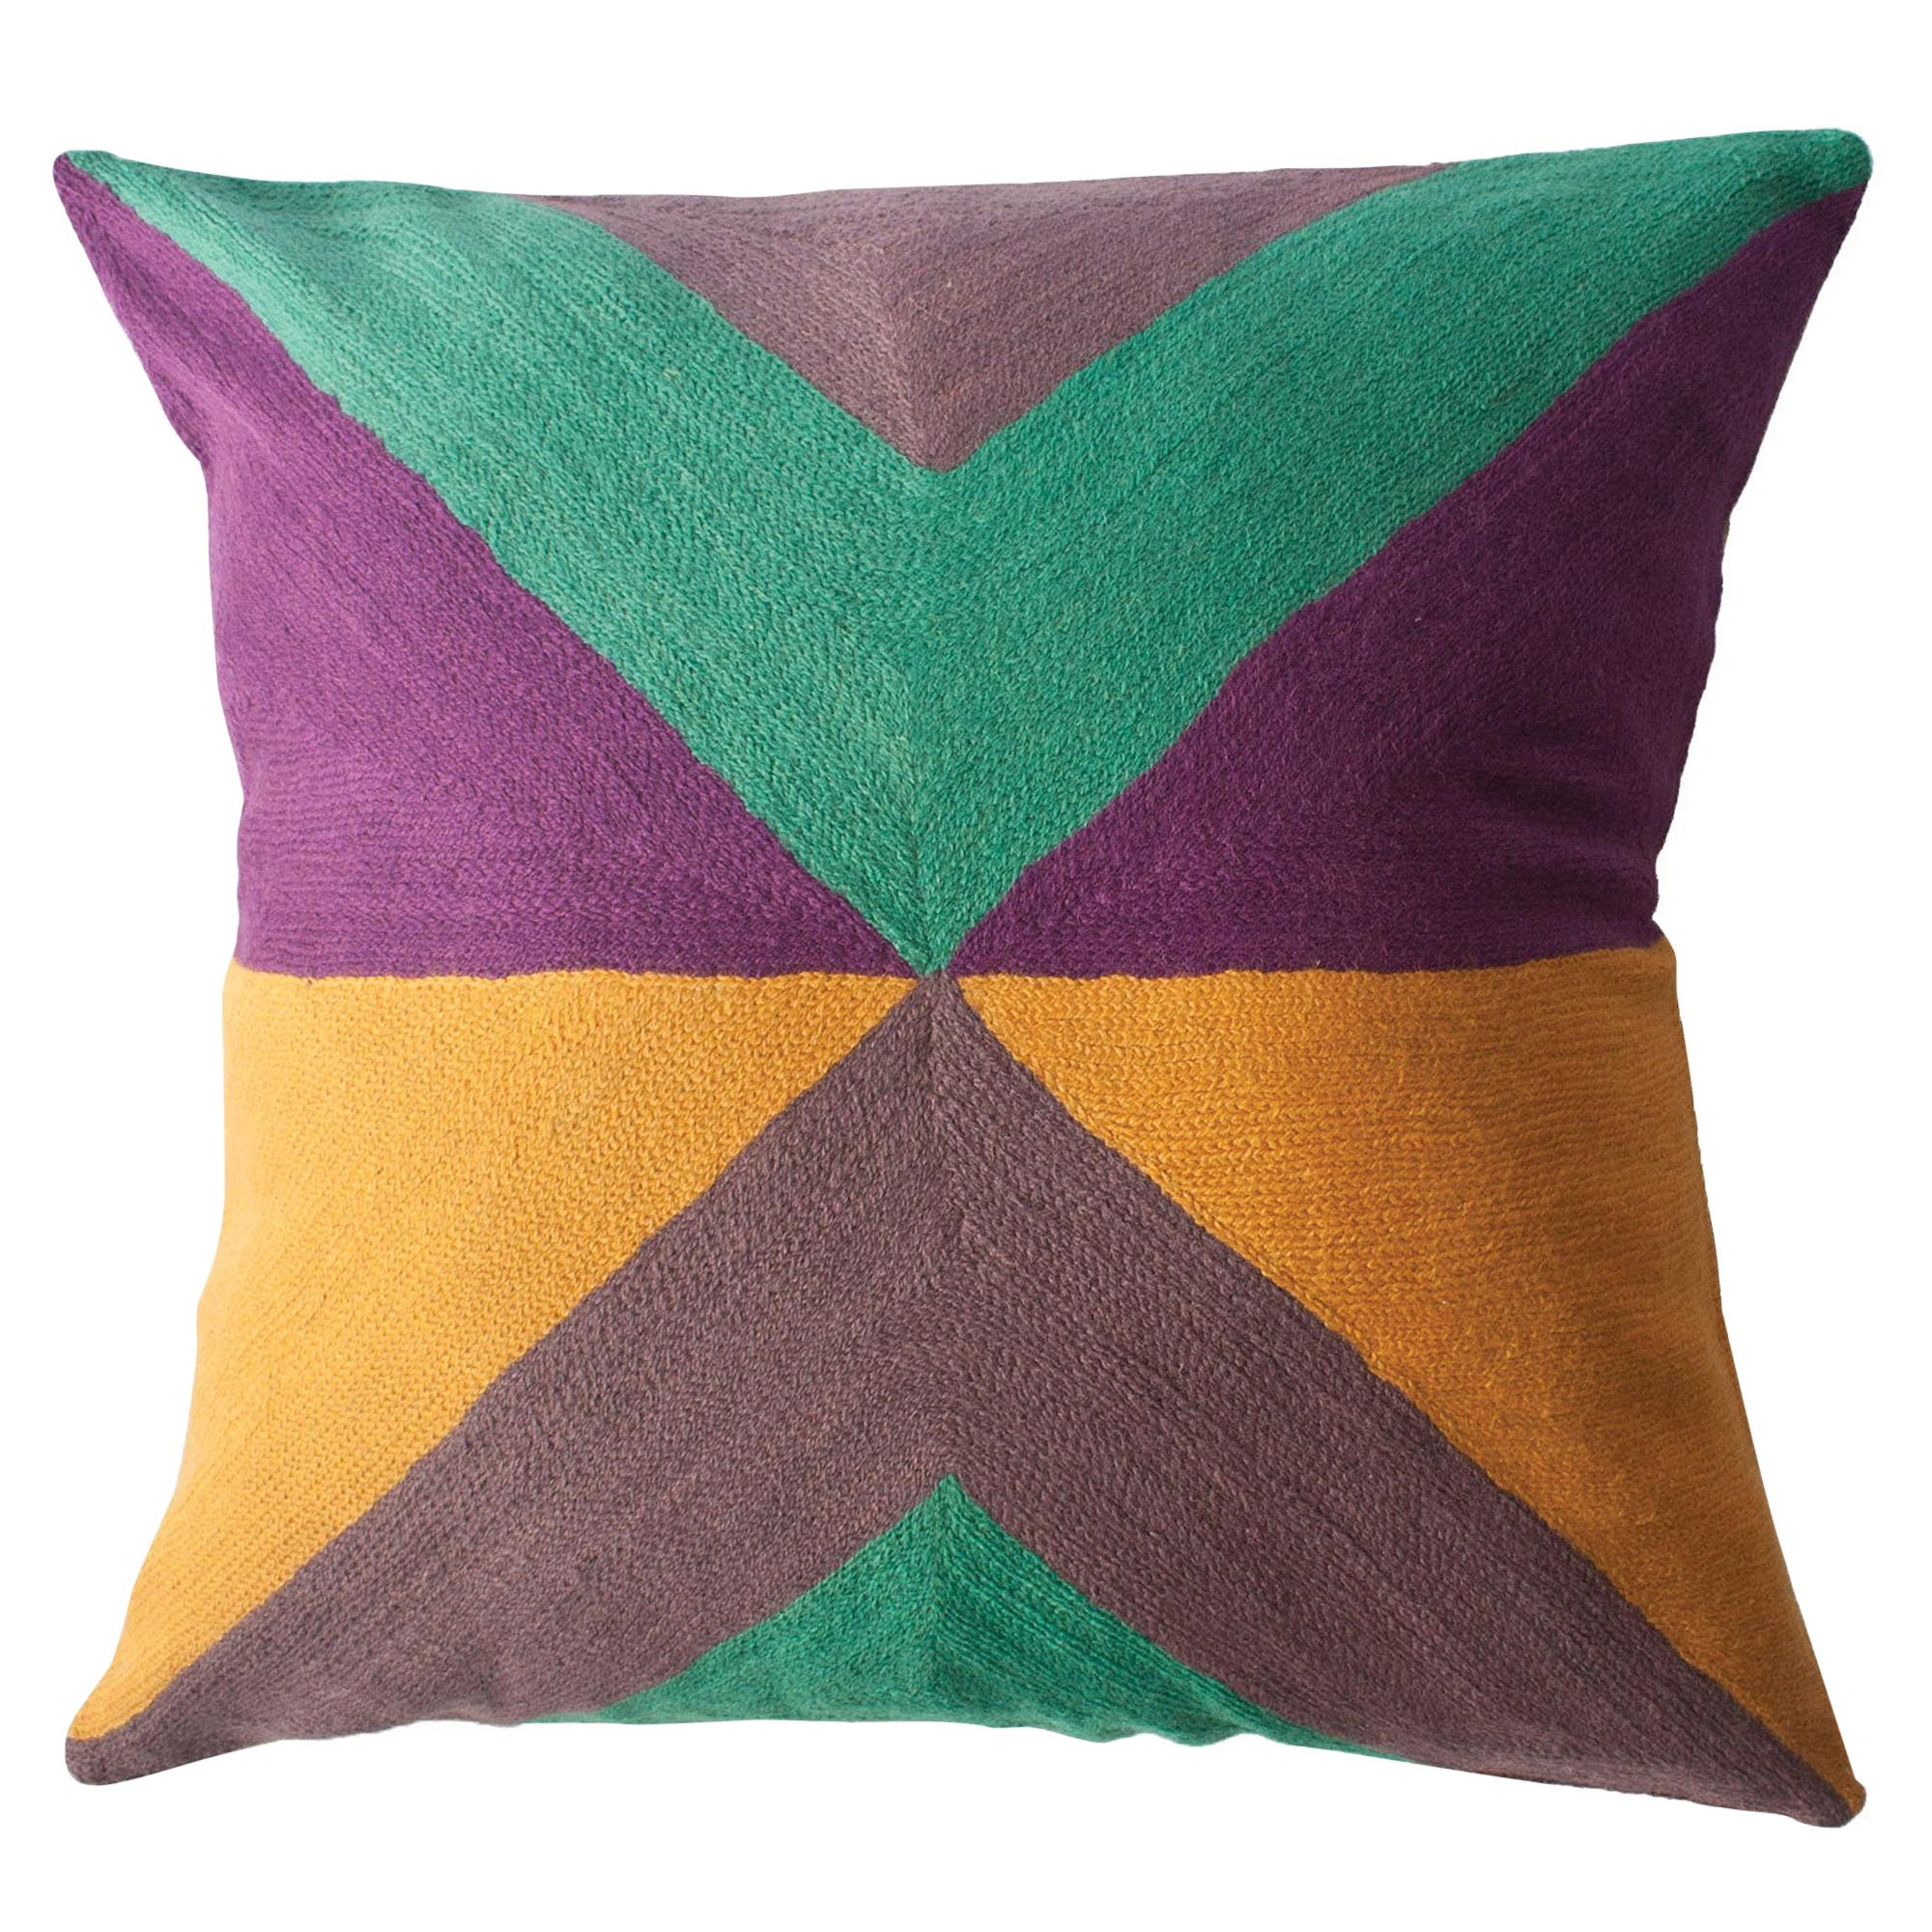 Zimbabwe West Summer Hand Embroidered Modern Geometric Throw Pillow Cover